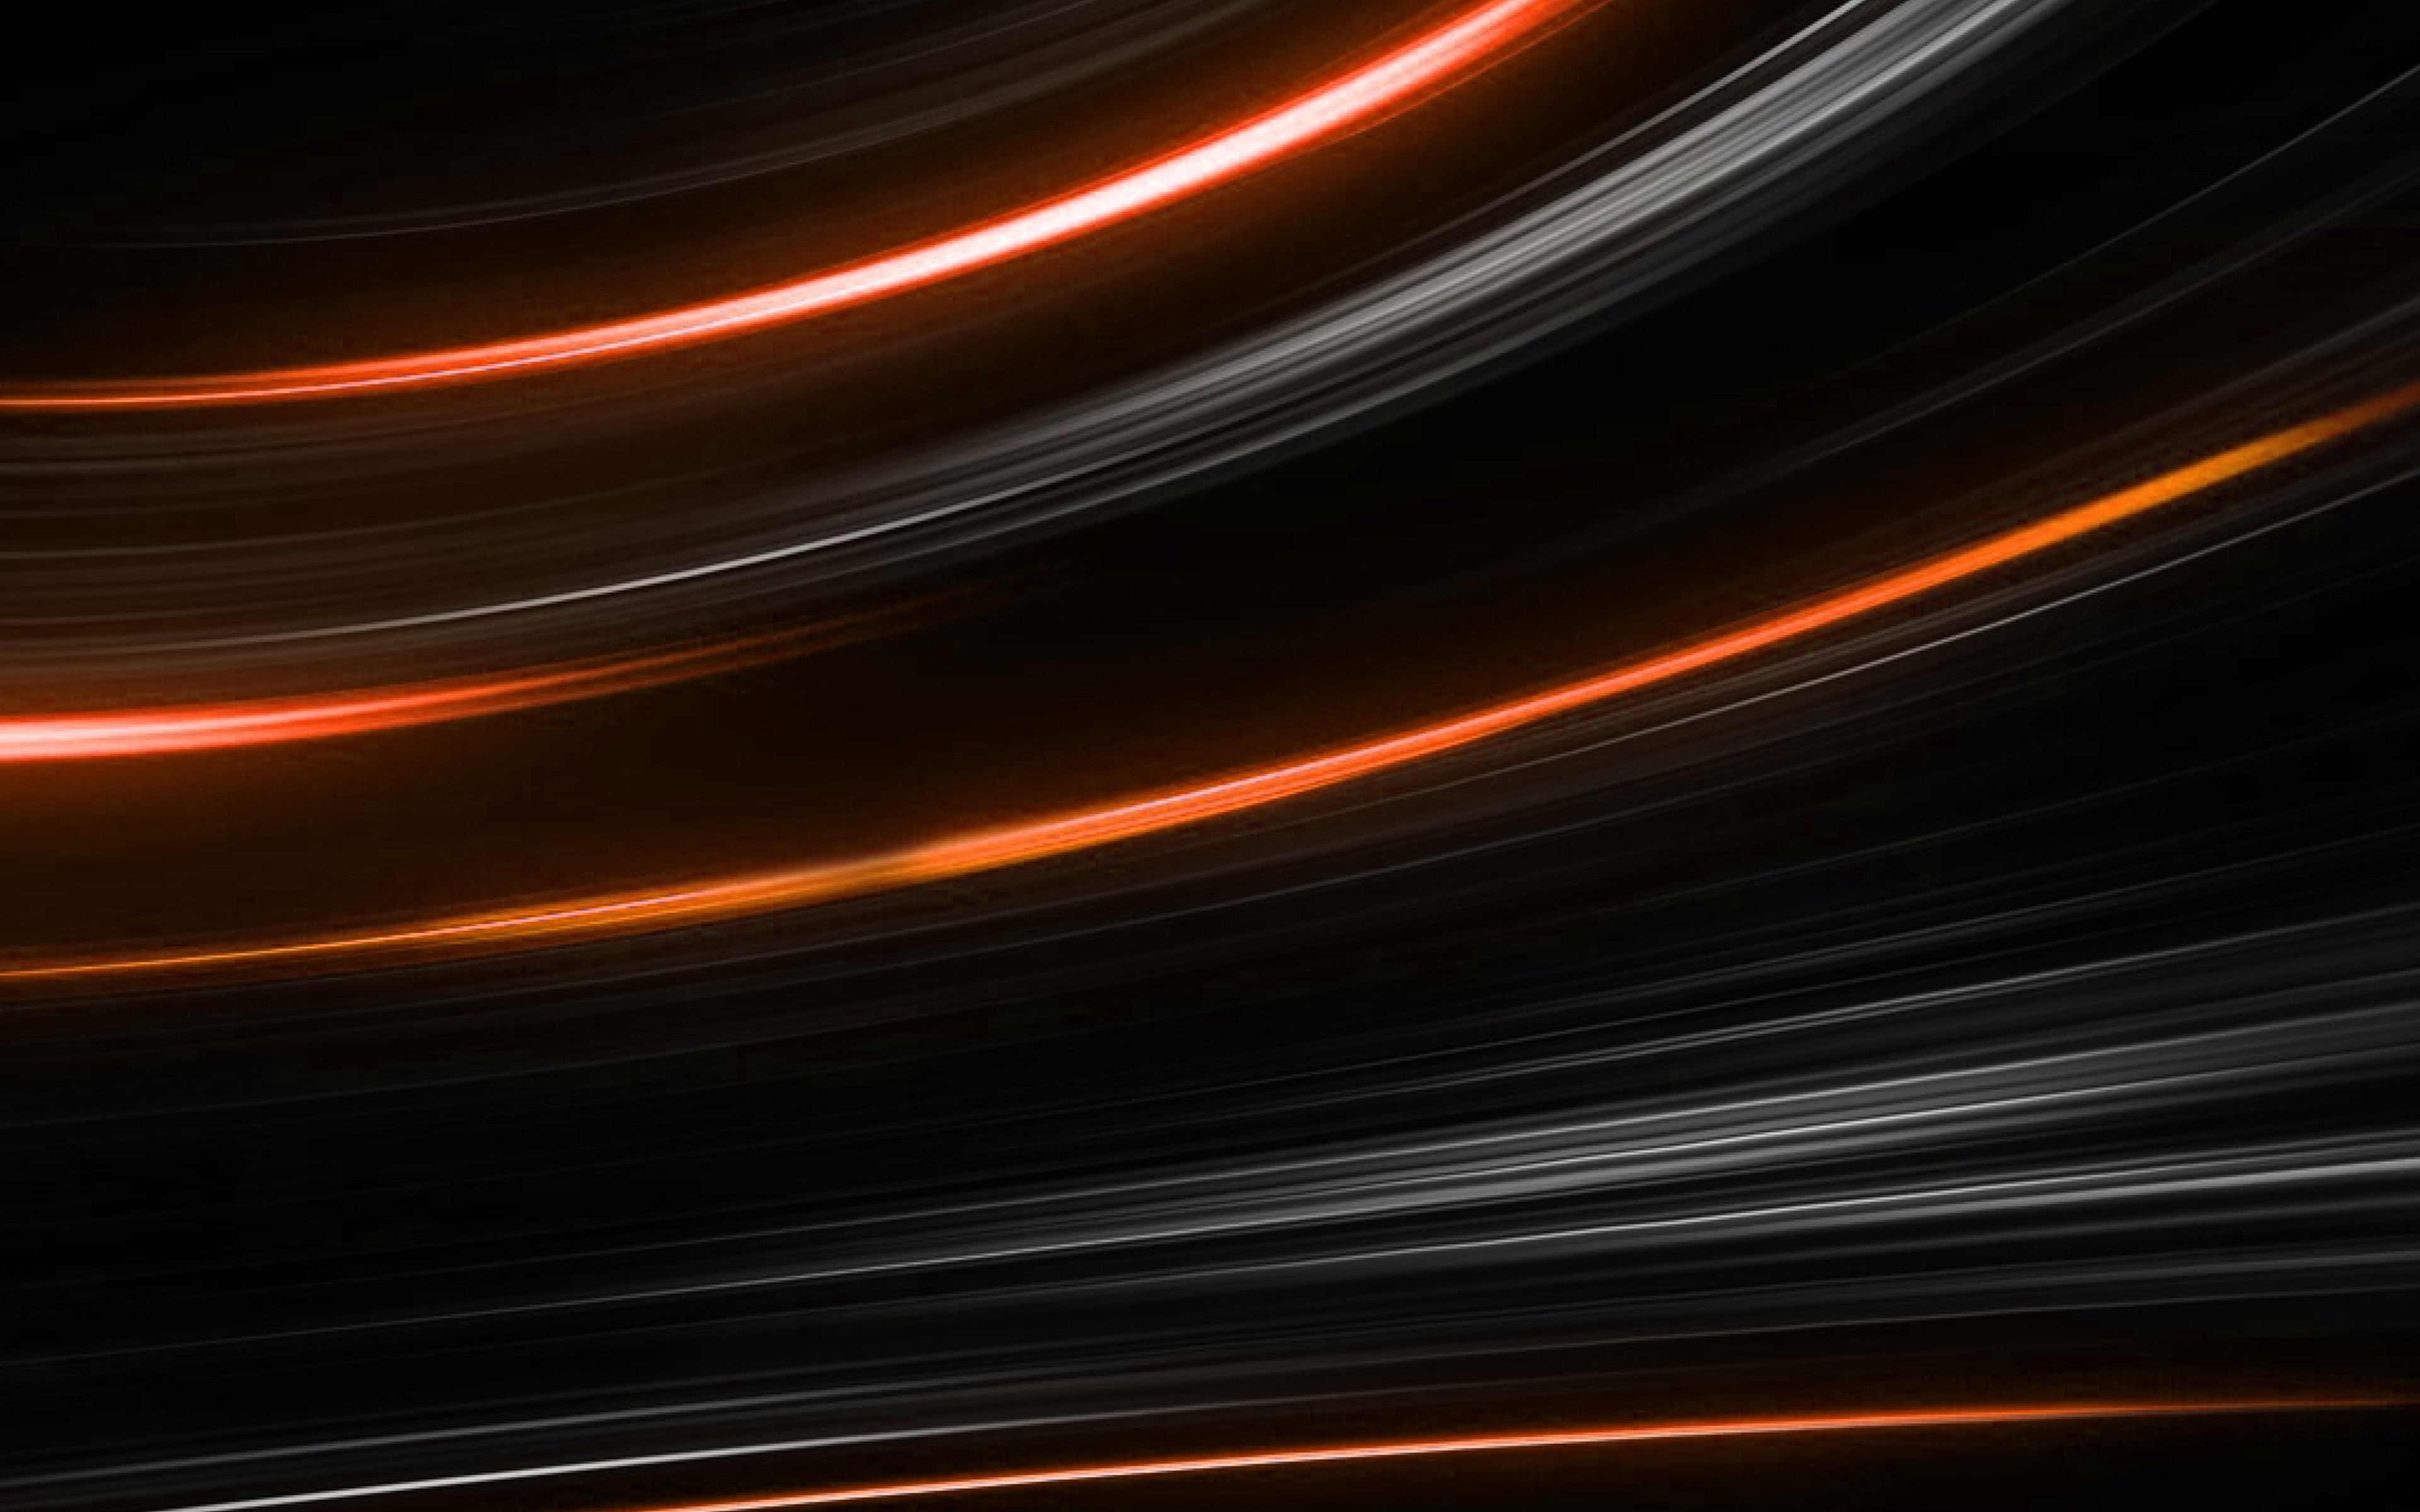 vo29-curve-abstract-line-dark-red-pattern-wallpaper